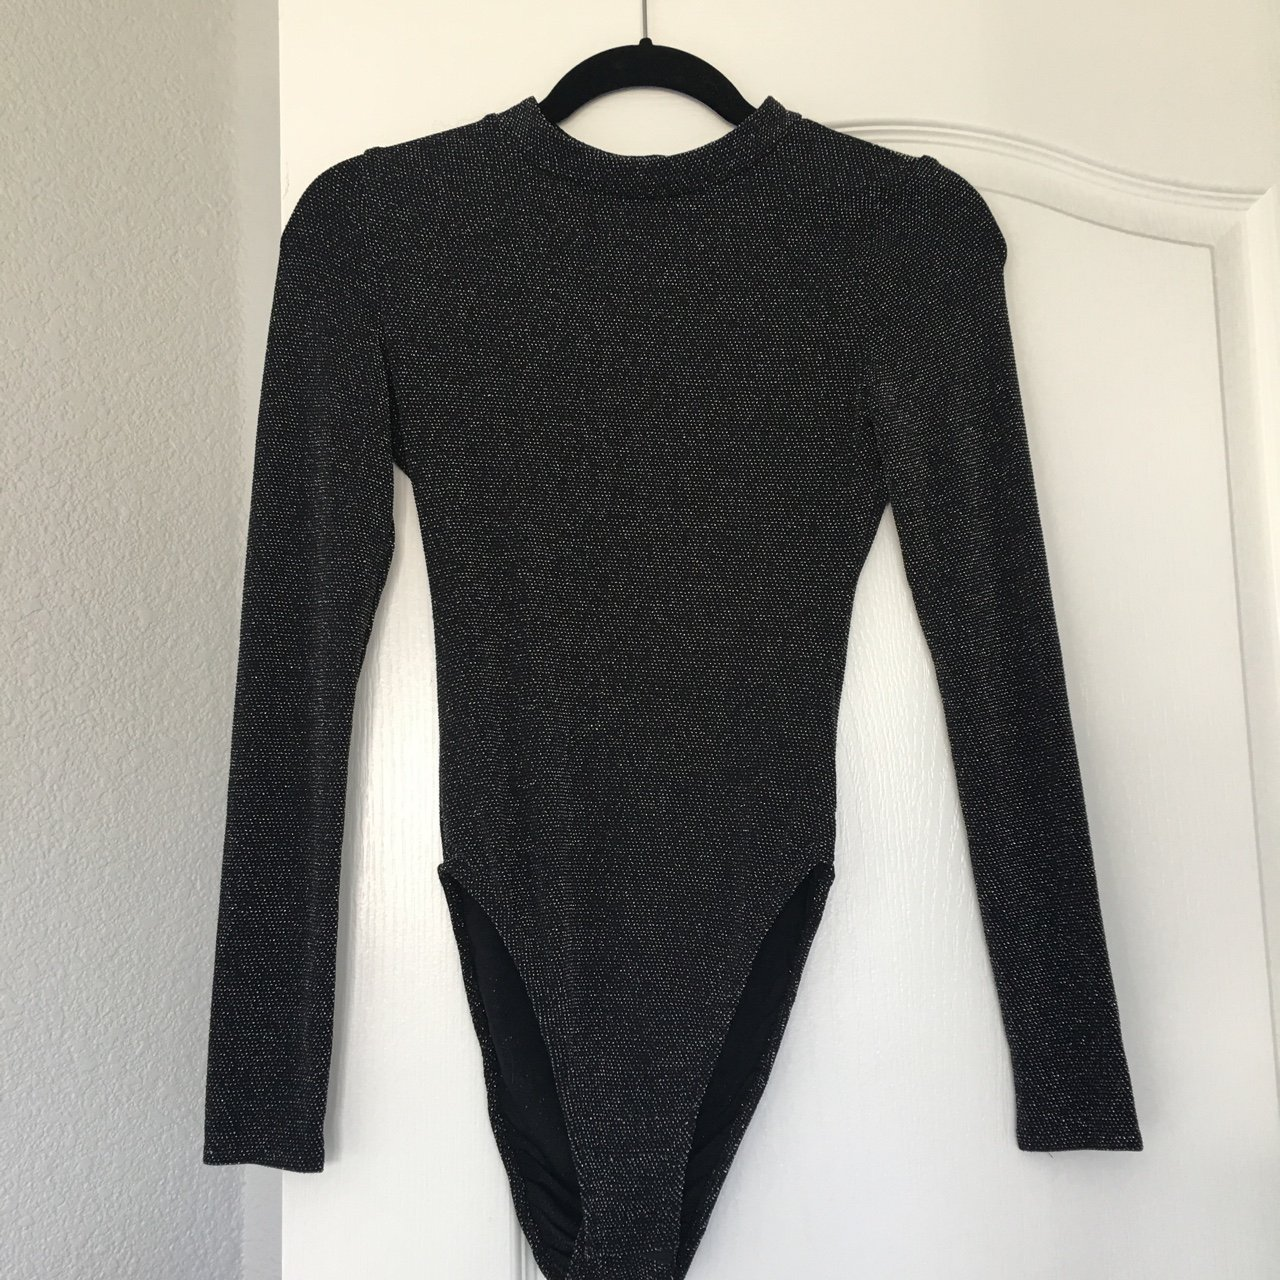 79f82cc5e9 Urban Outfitters black sparkly bodysuit.  25 · H M Divided Collection Mock  Neck